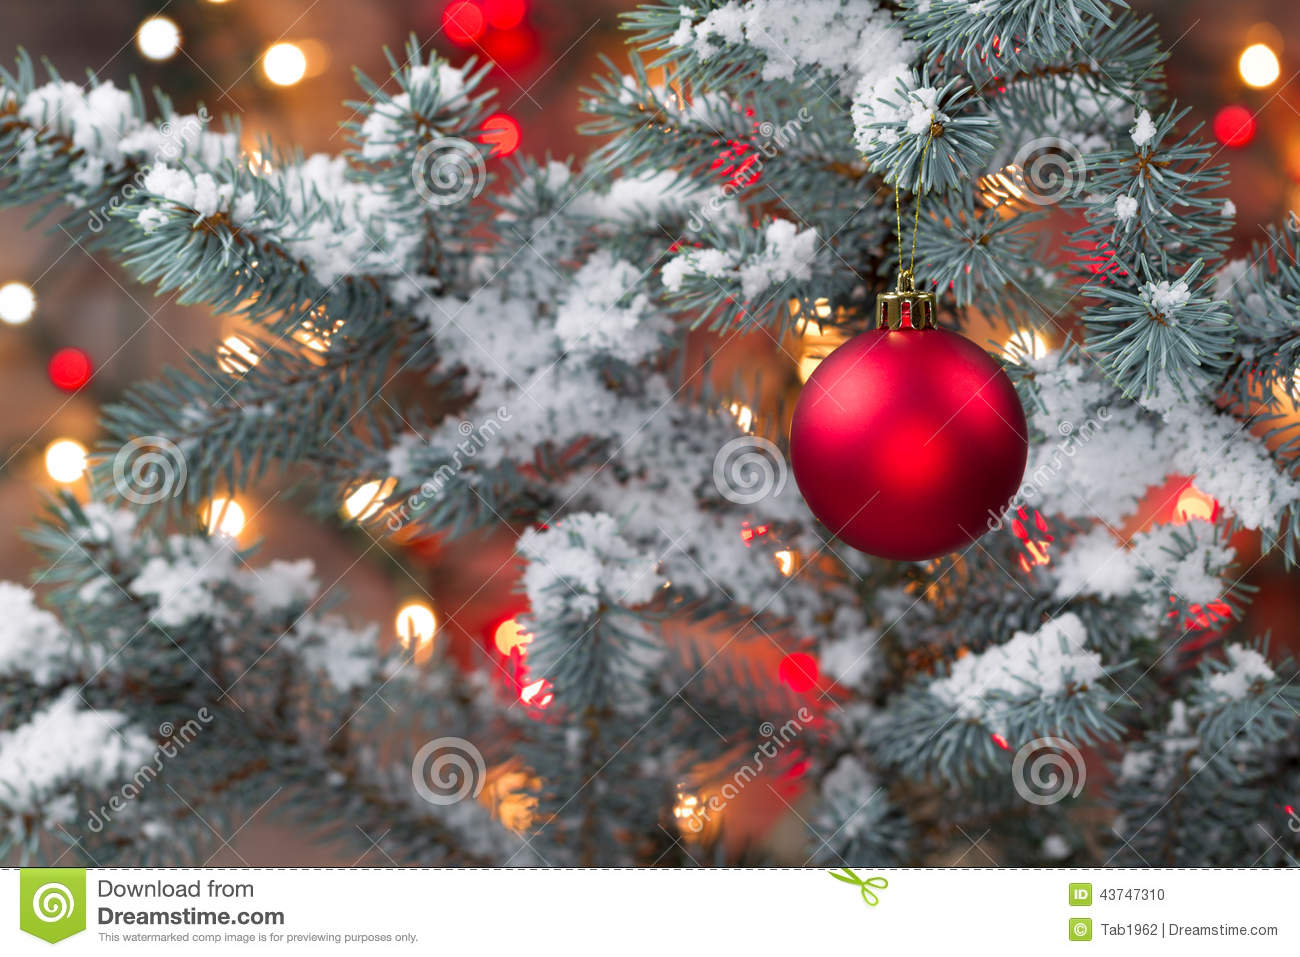 Snow Covered Christmas Tree With Hanging Red Ornament